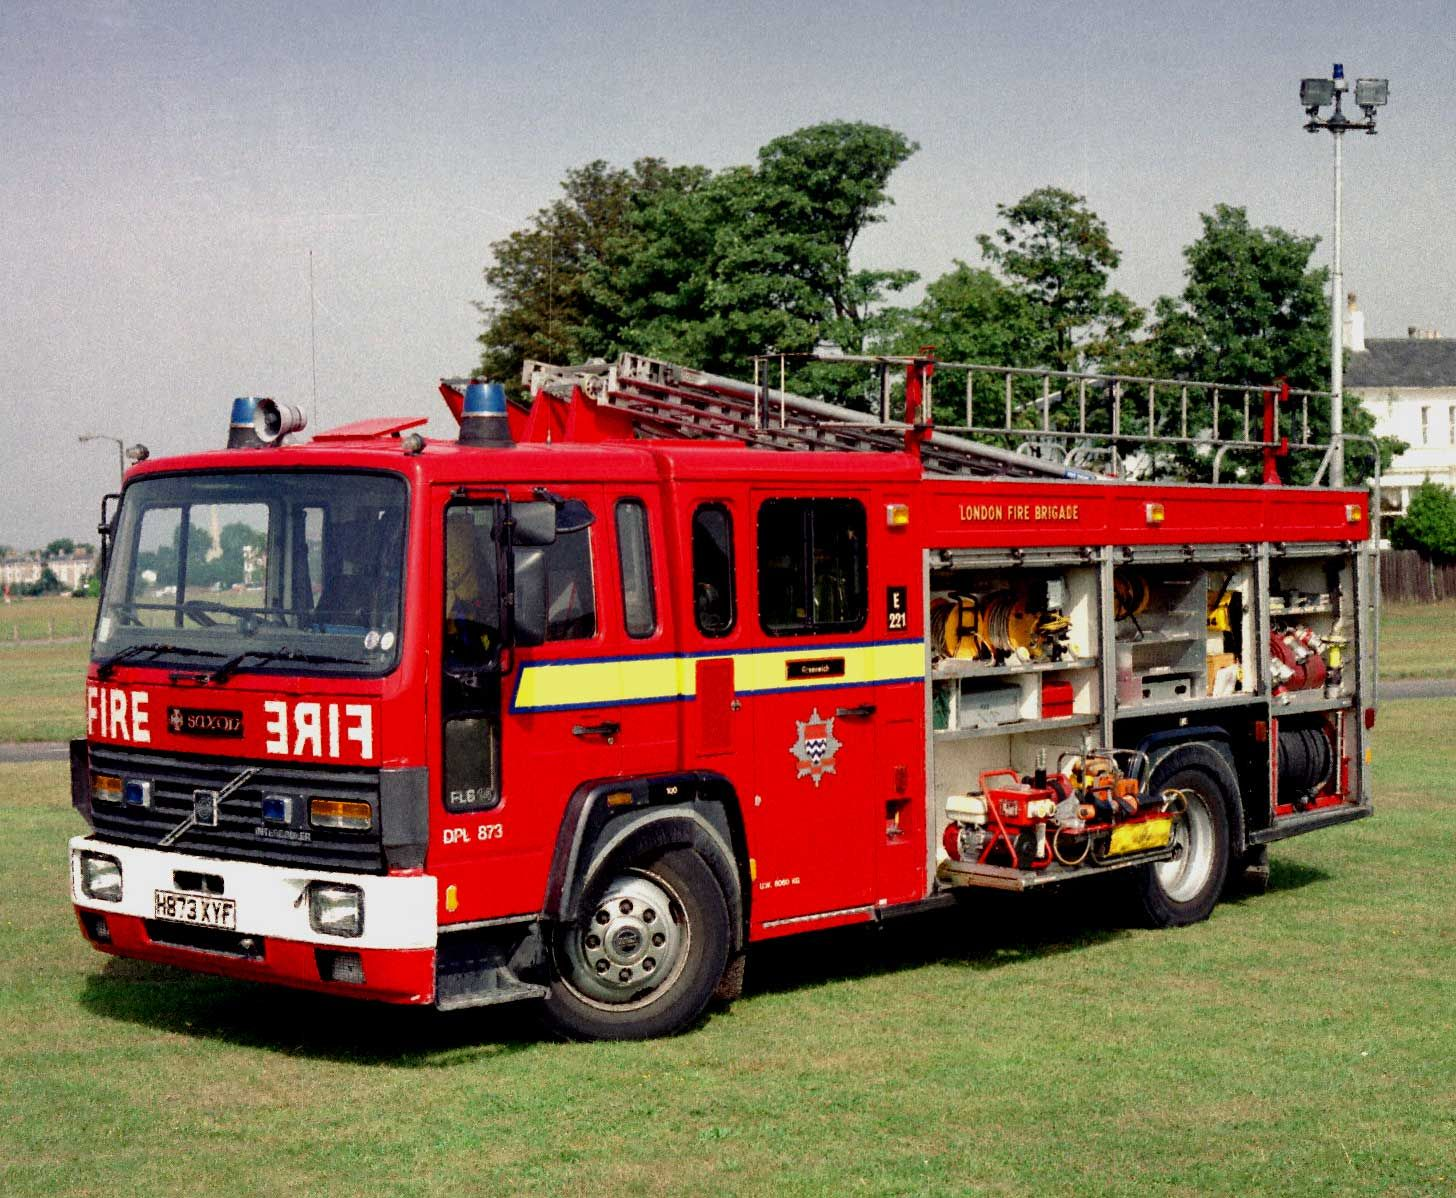 Big Red Fire Engine In Service With The London Fire Brigade With